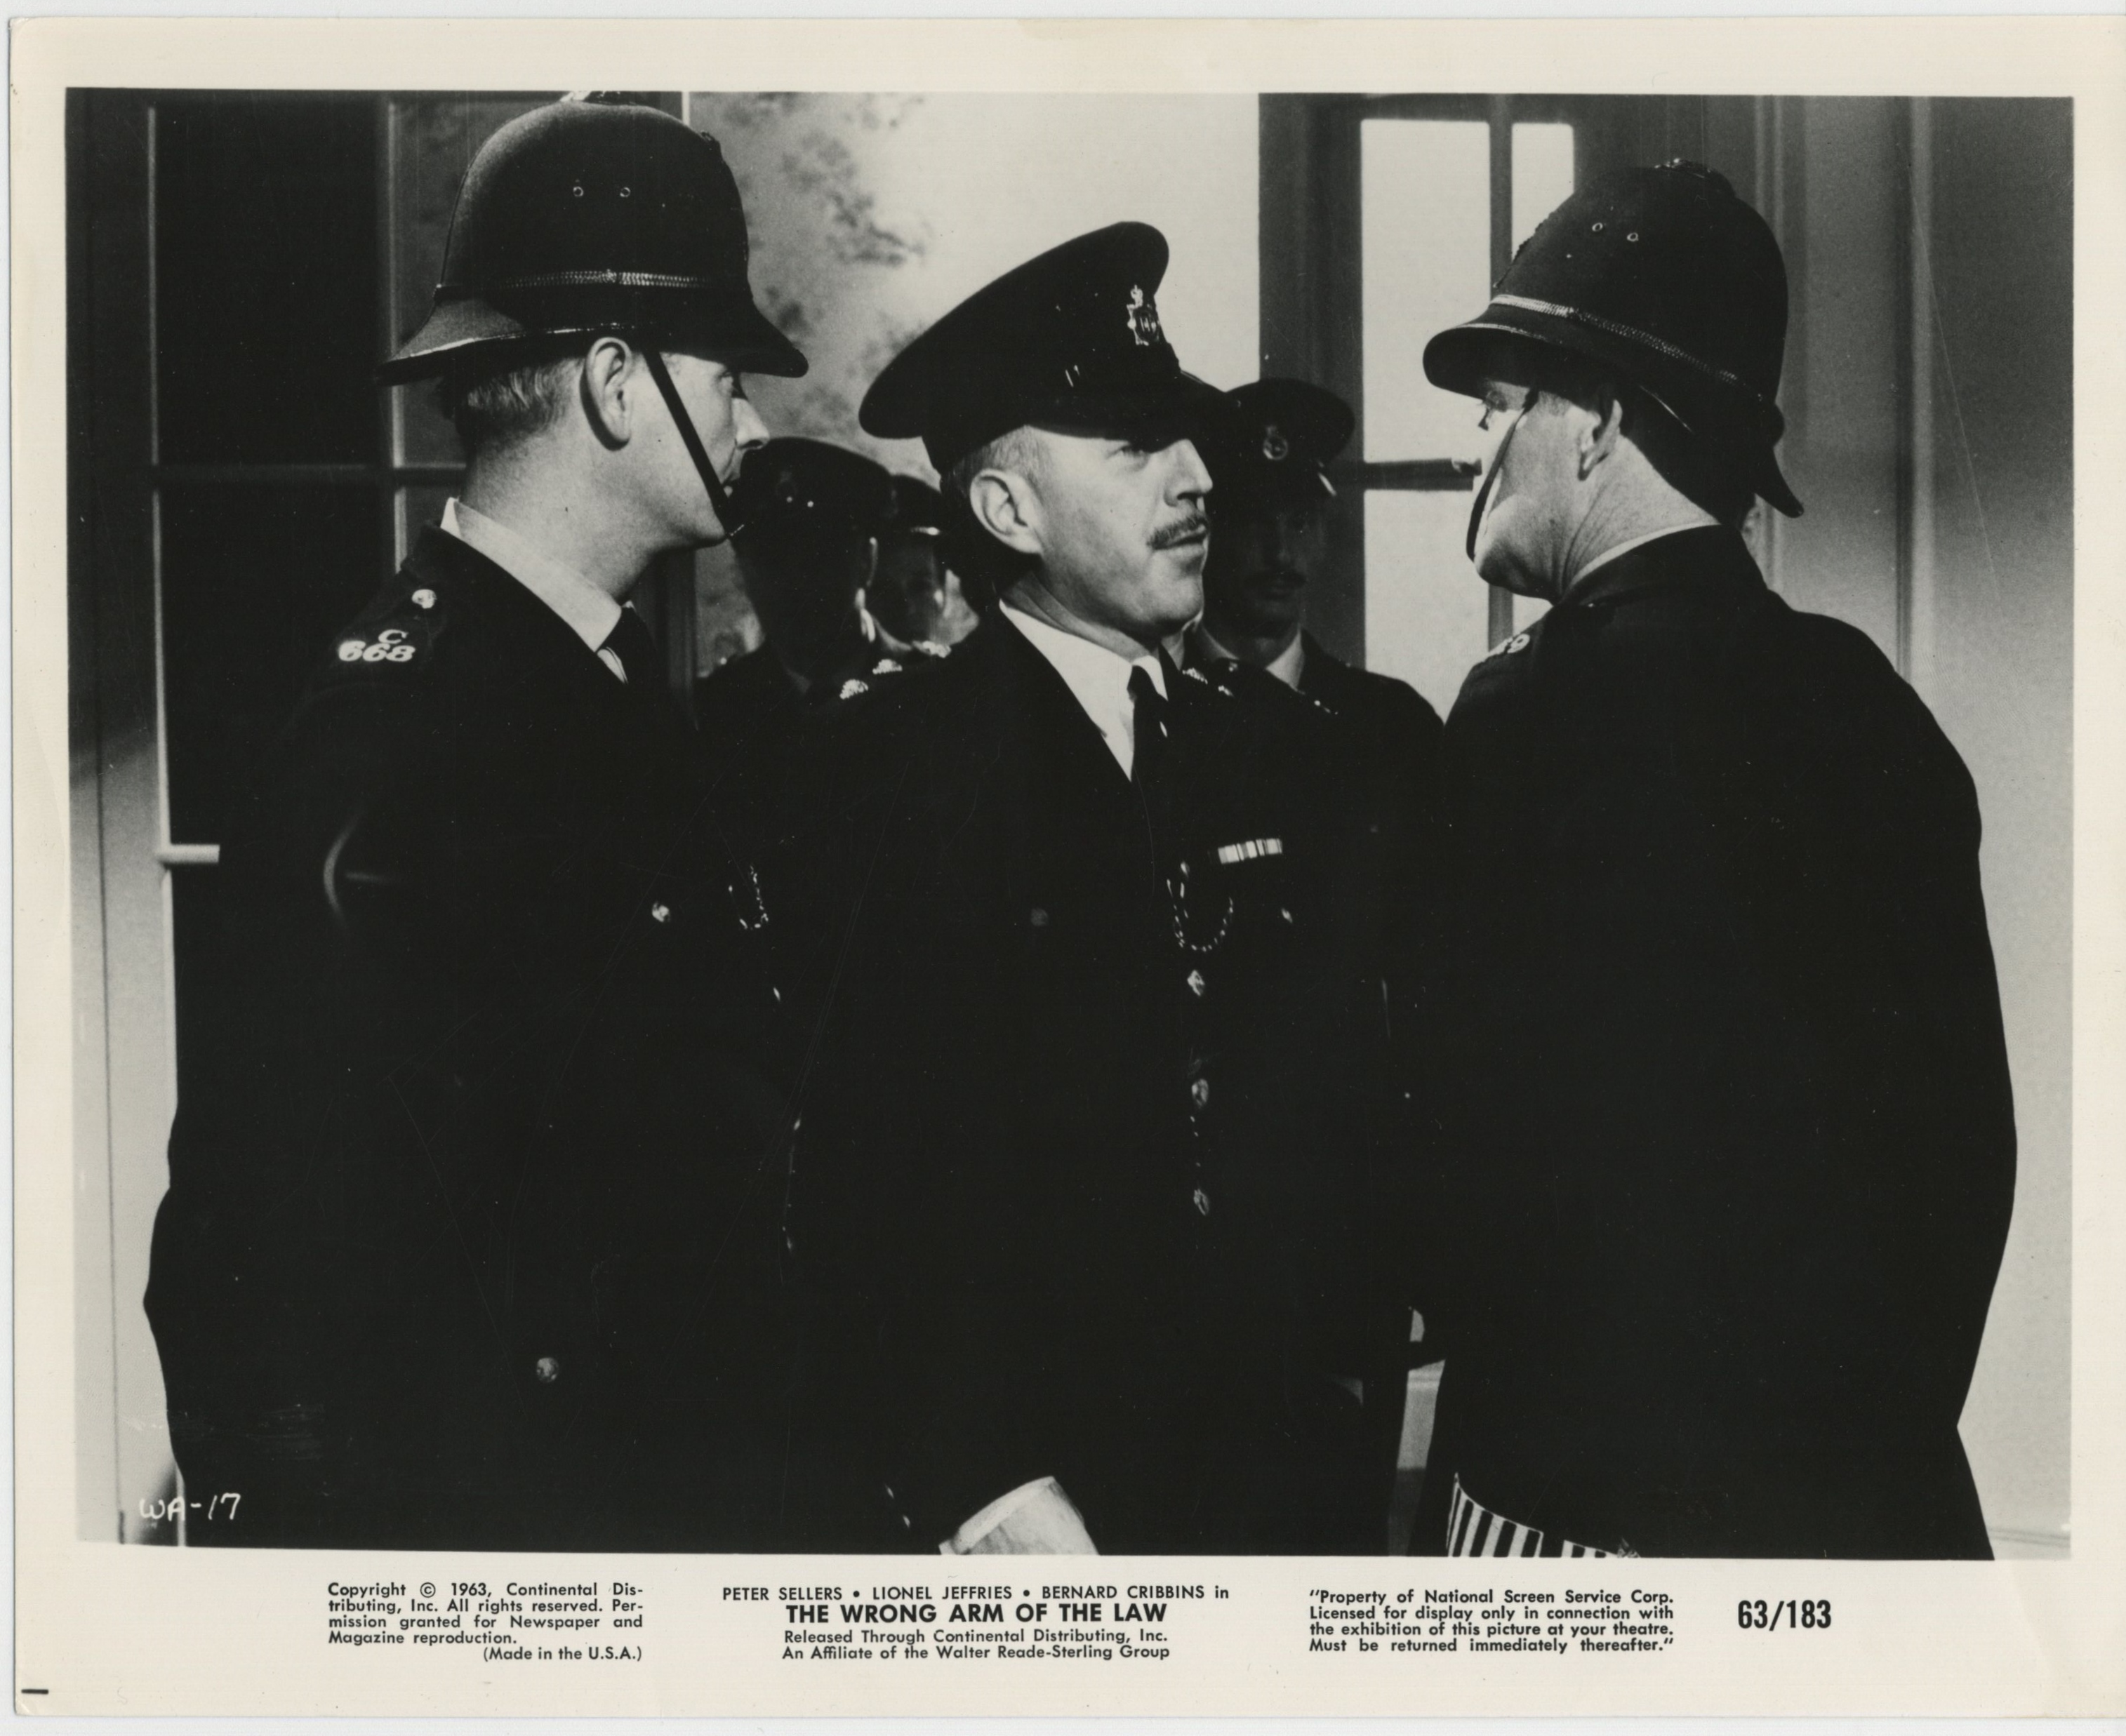 Lionel Jeffries in The Wrong Arm of the Law (1963)